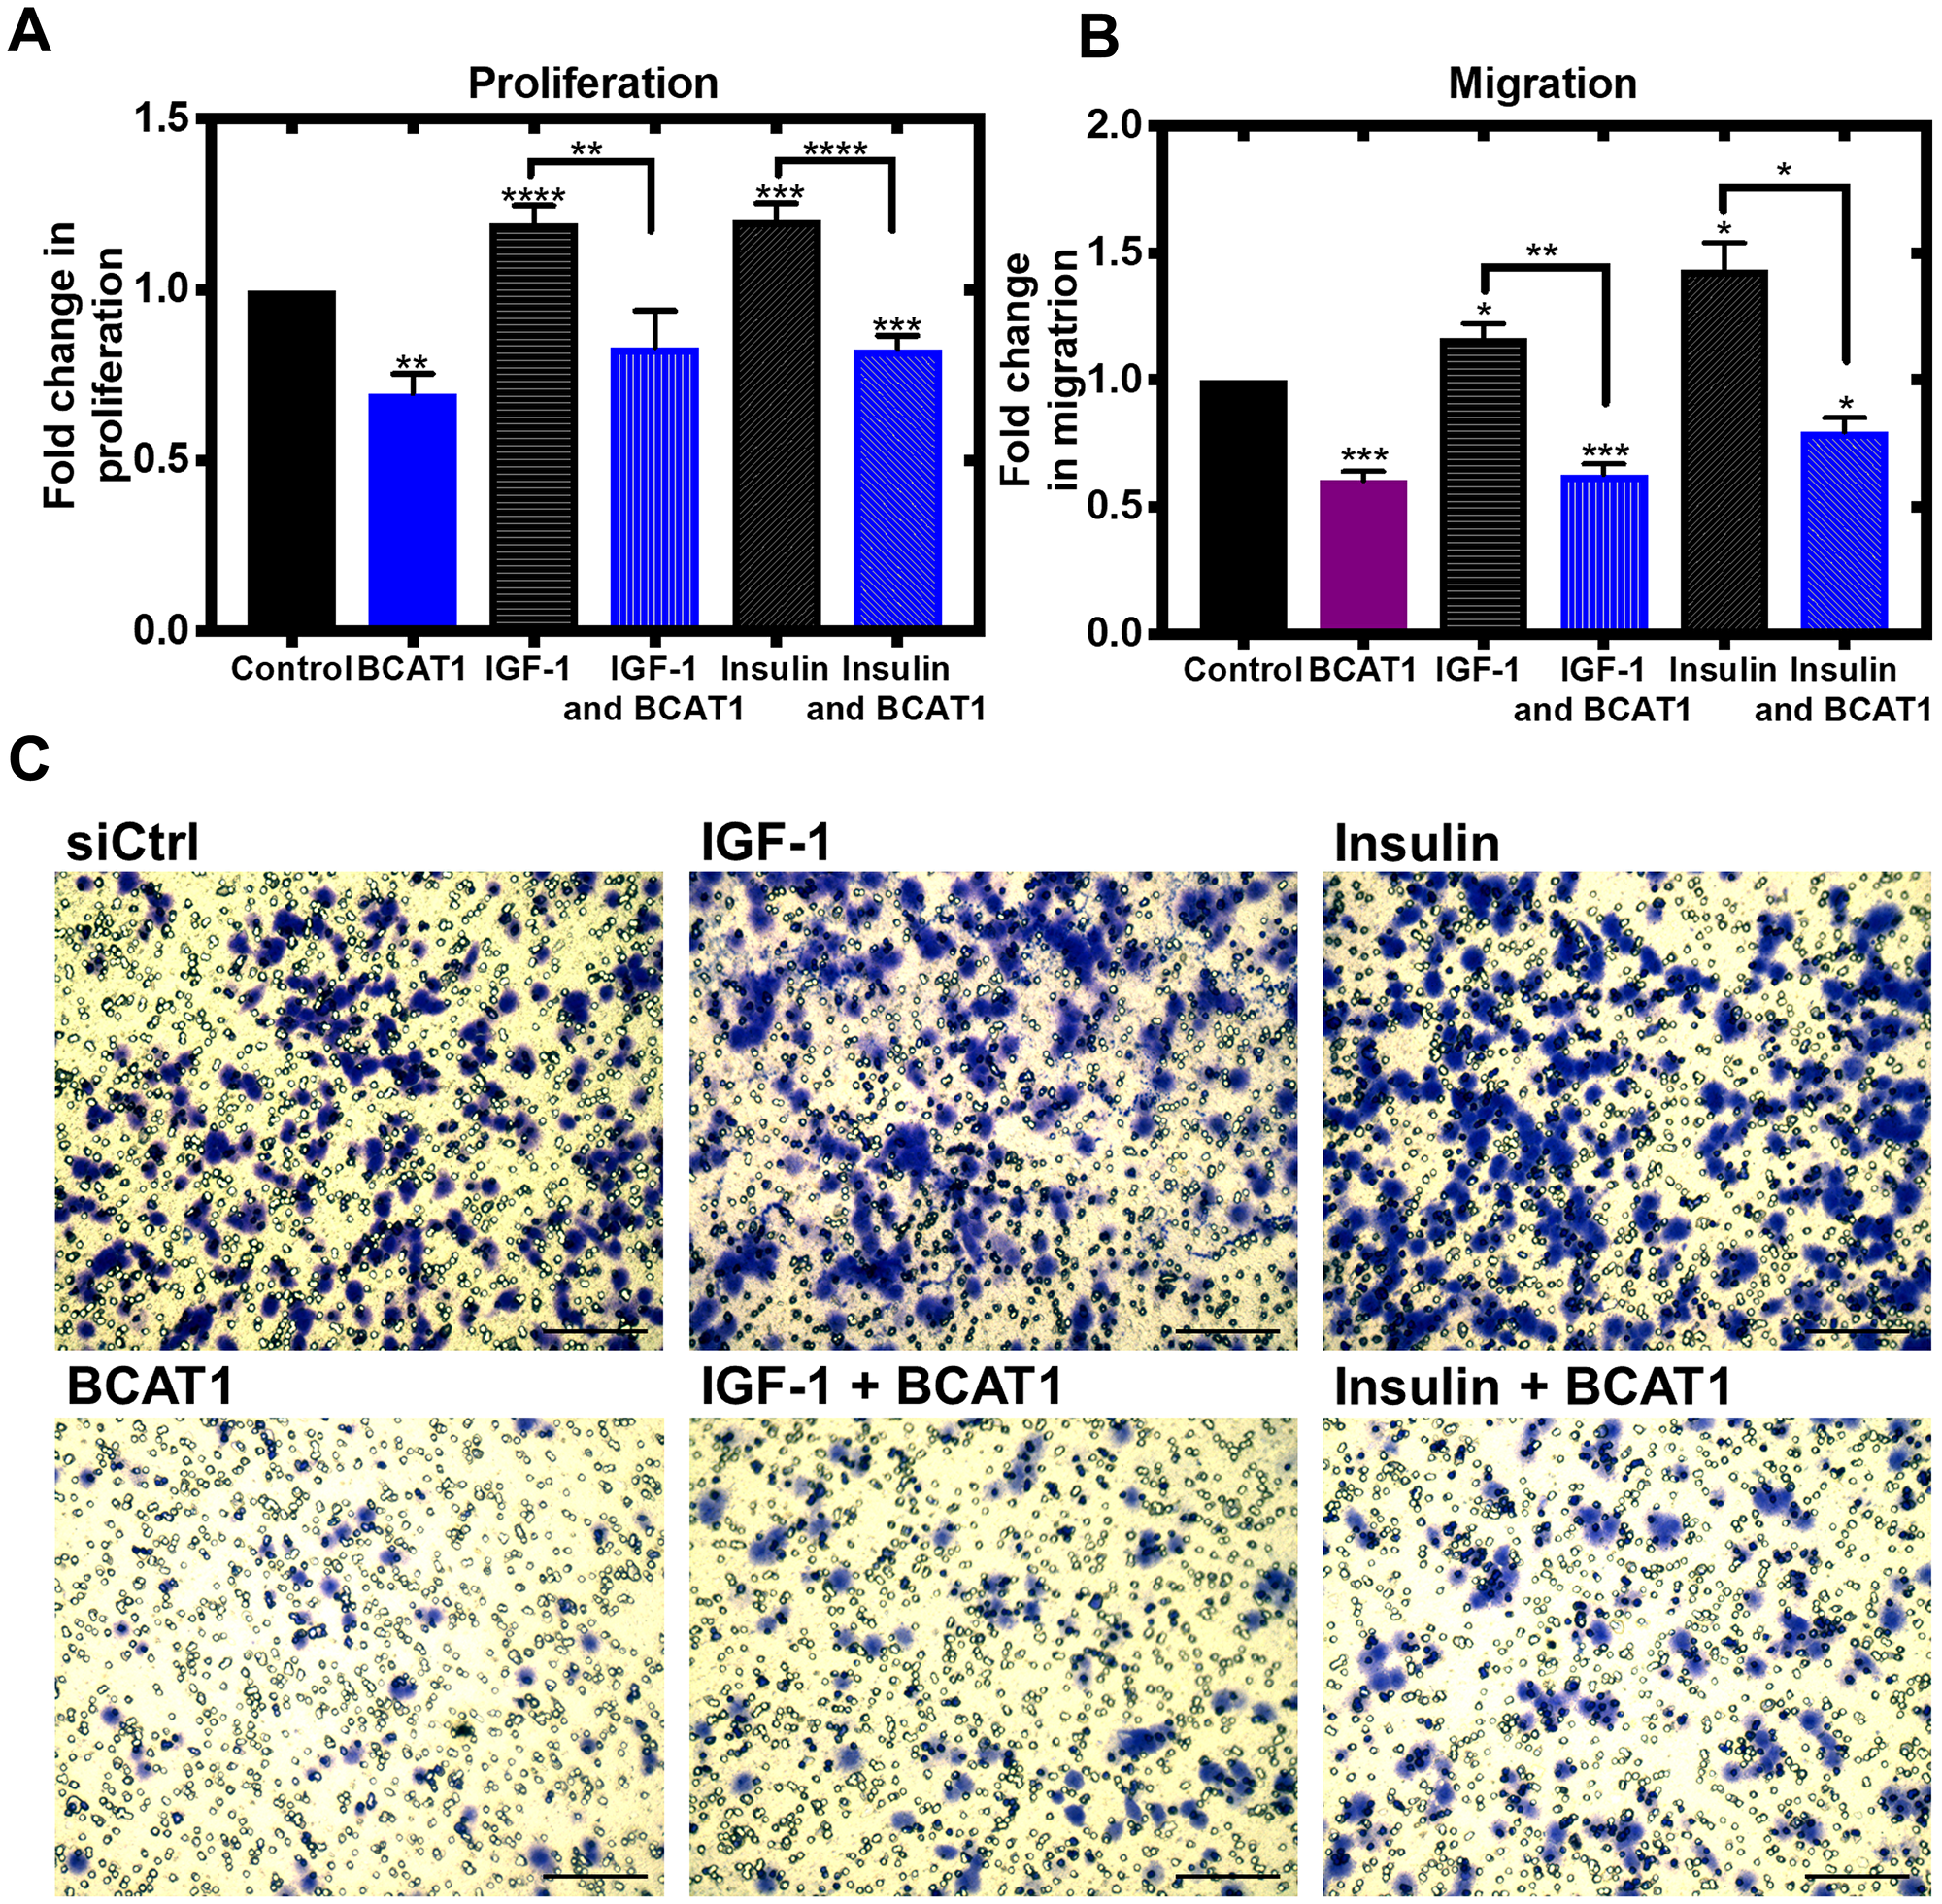 Knockdown of BCAT1 significantly reduces insulin and IGF-1-mediated migration of MDA-MB-231 cells.